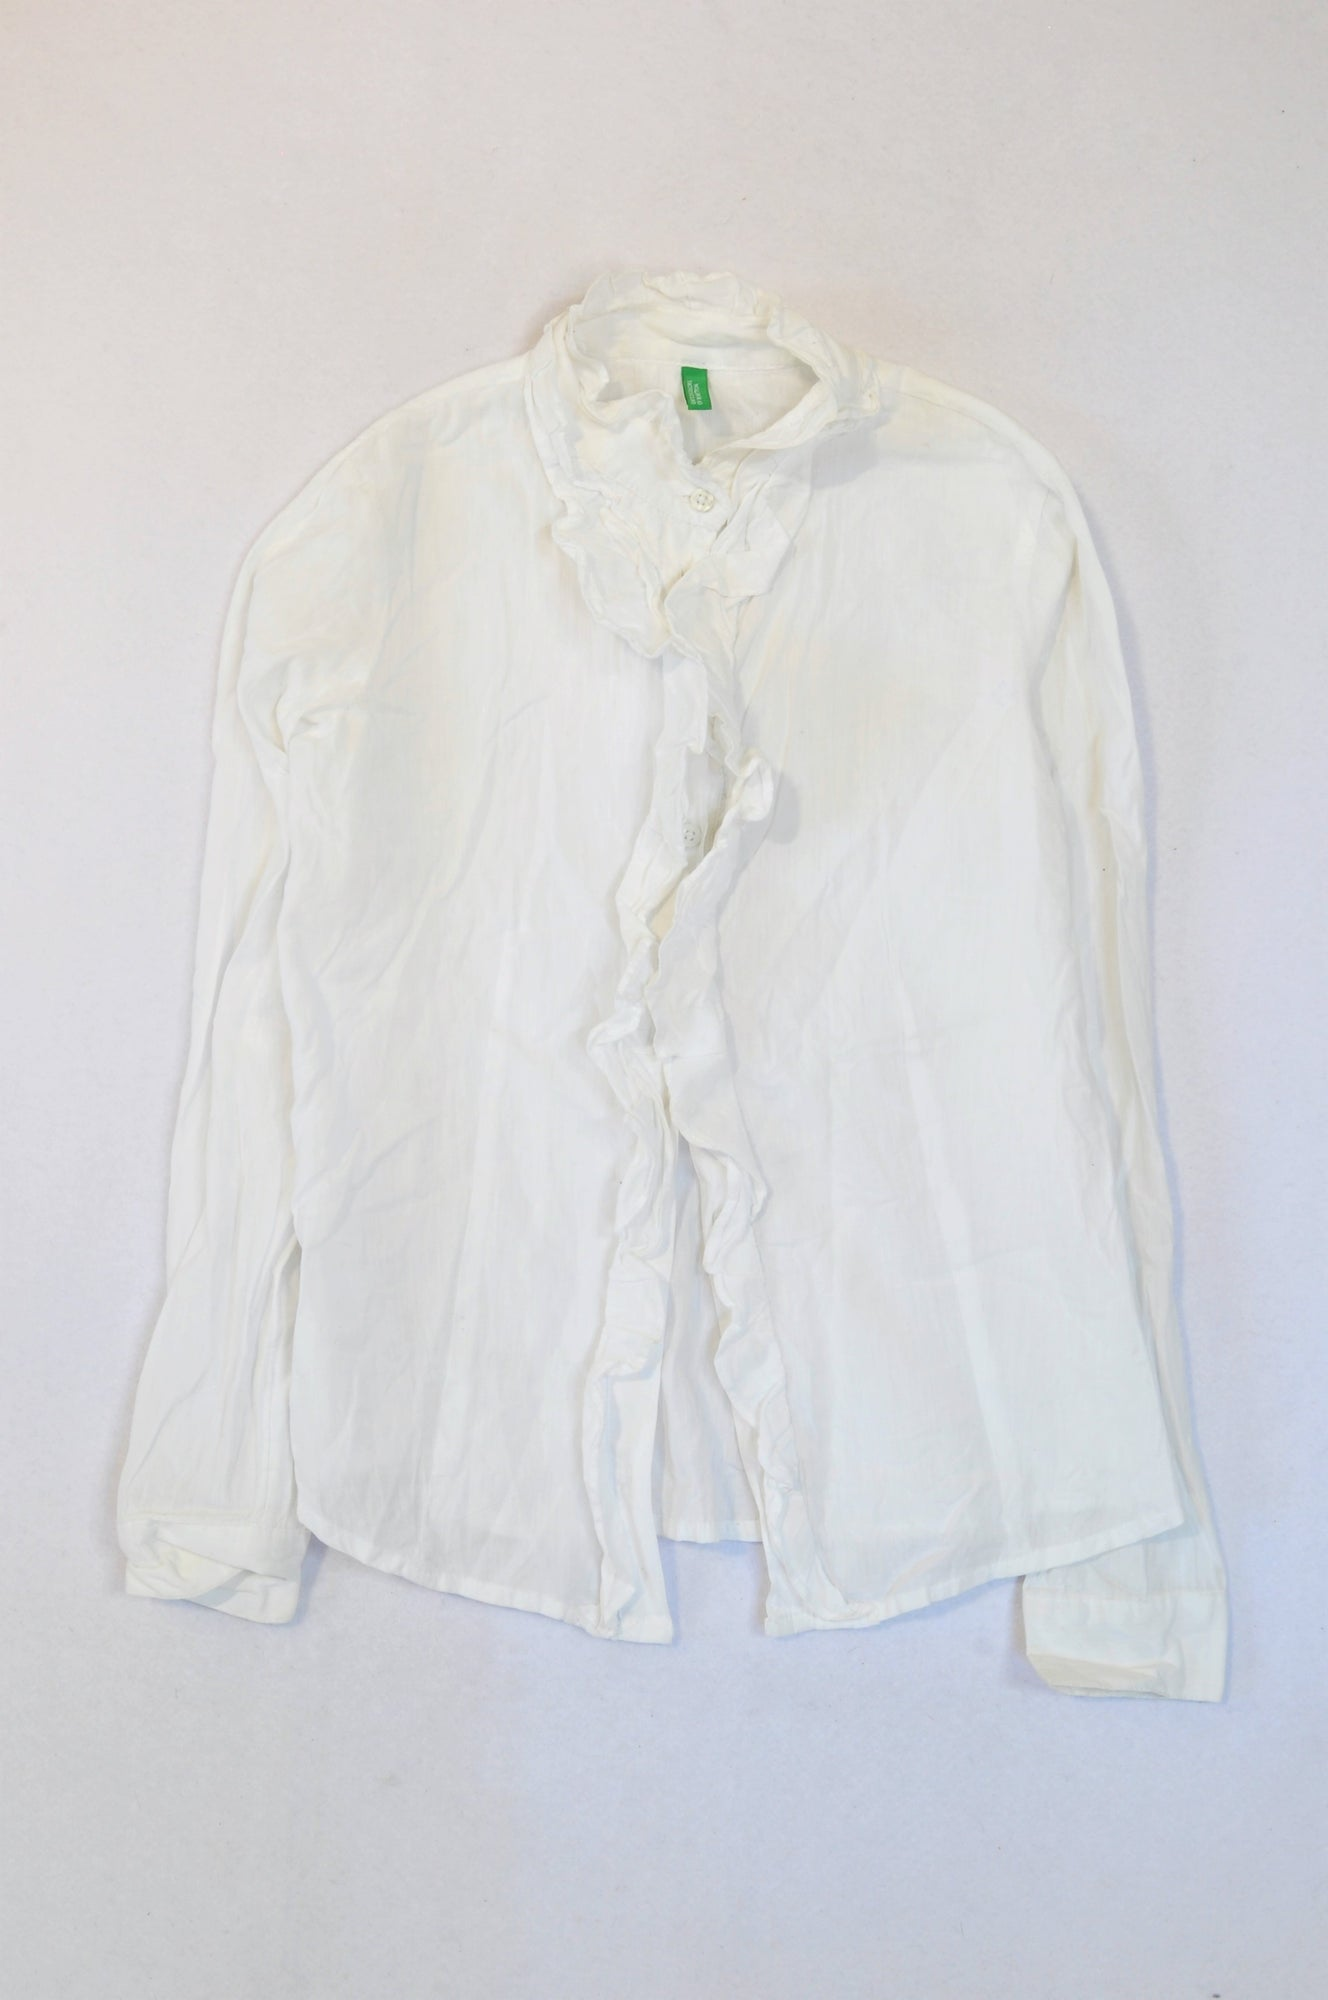 United Colors of Benetton White Frill Long Sleeve Blouse Girls 10-11 years